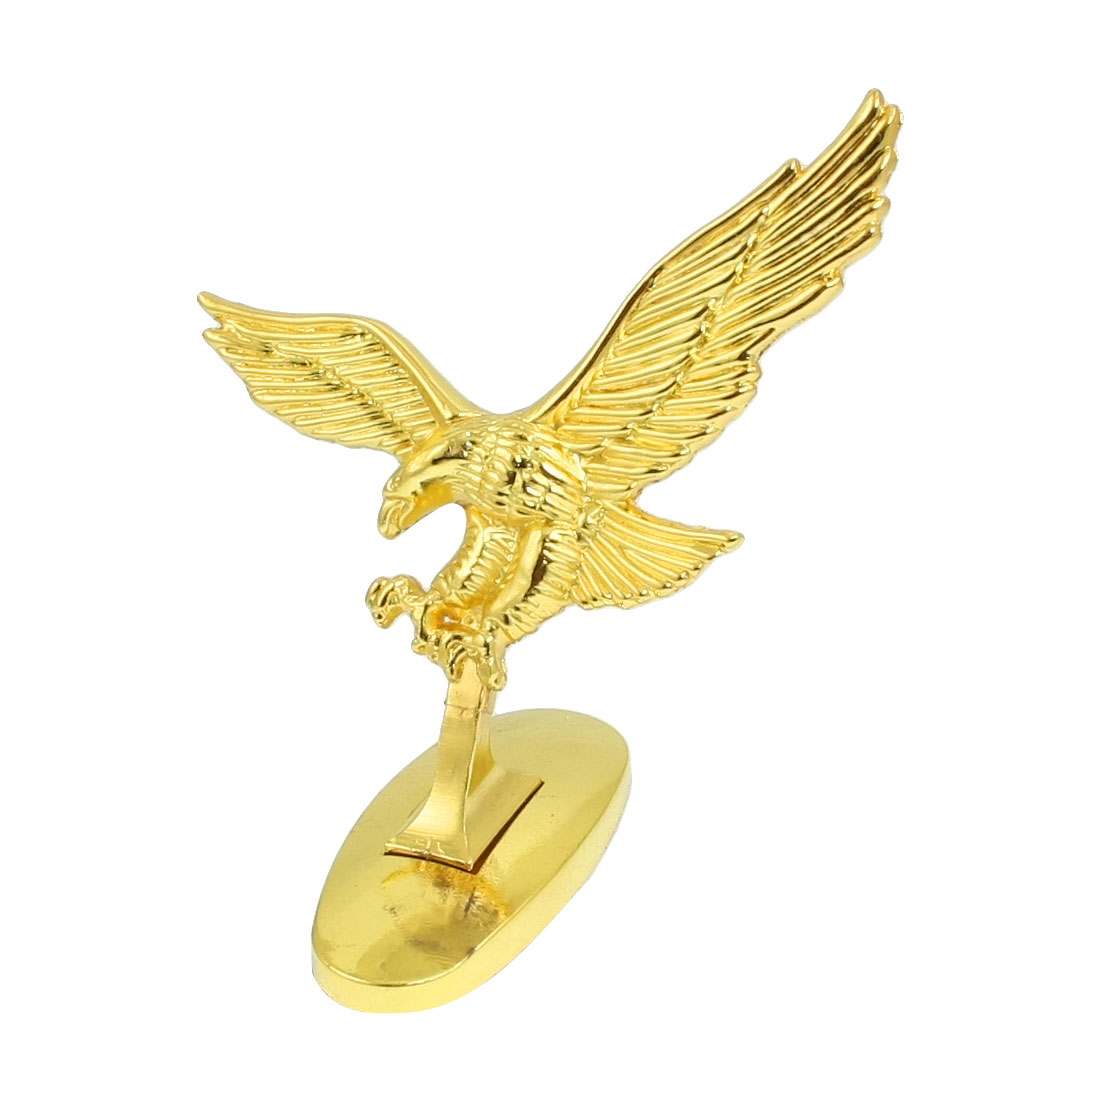 Gold Tone 3D Flying Eagle Adhesive Sticker Decal for Auto Car